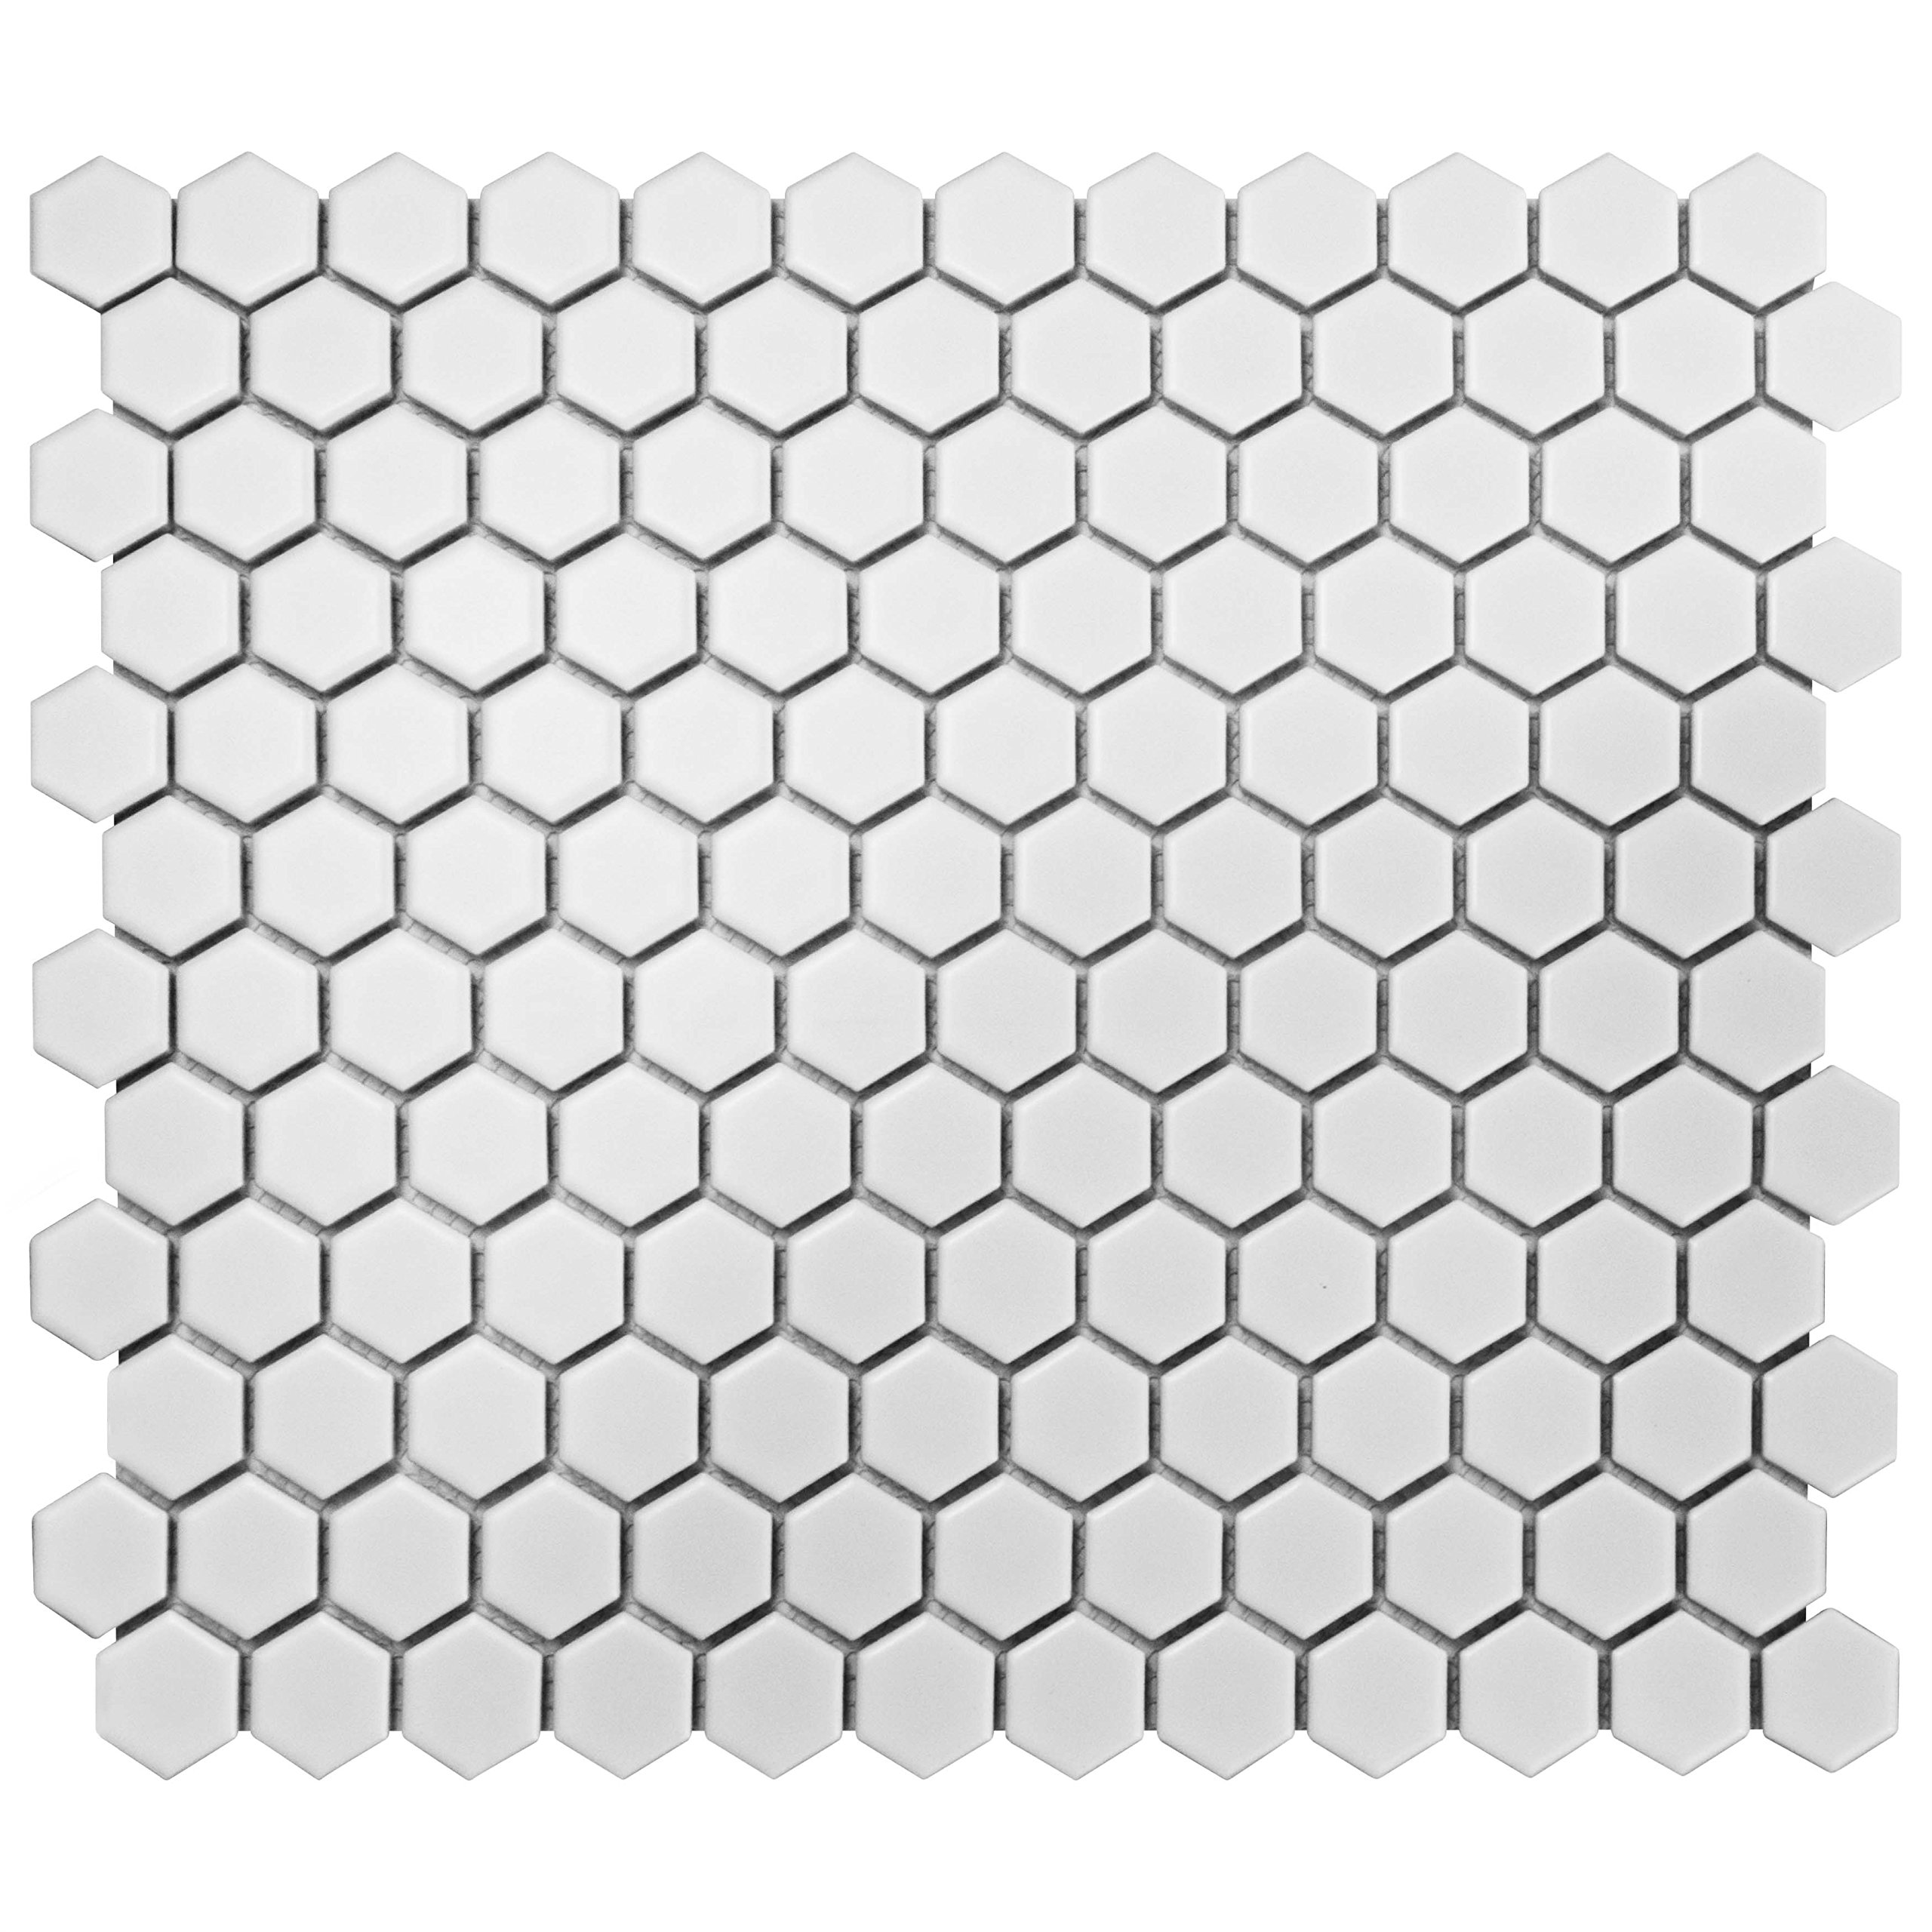 SomerTile FDXMHMW Retro Hex Porcelain Floor and Wall Tile, 10.25'' x 11.75'', Matte White by SOMERTILE